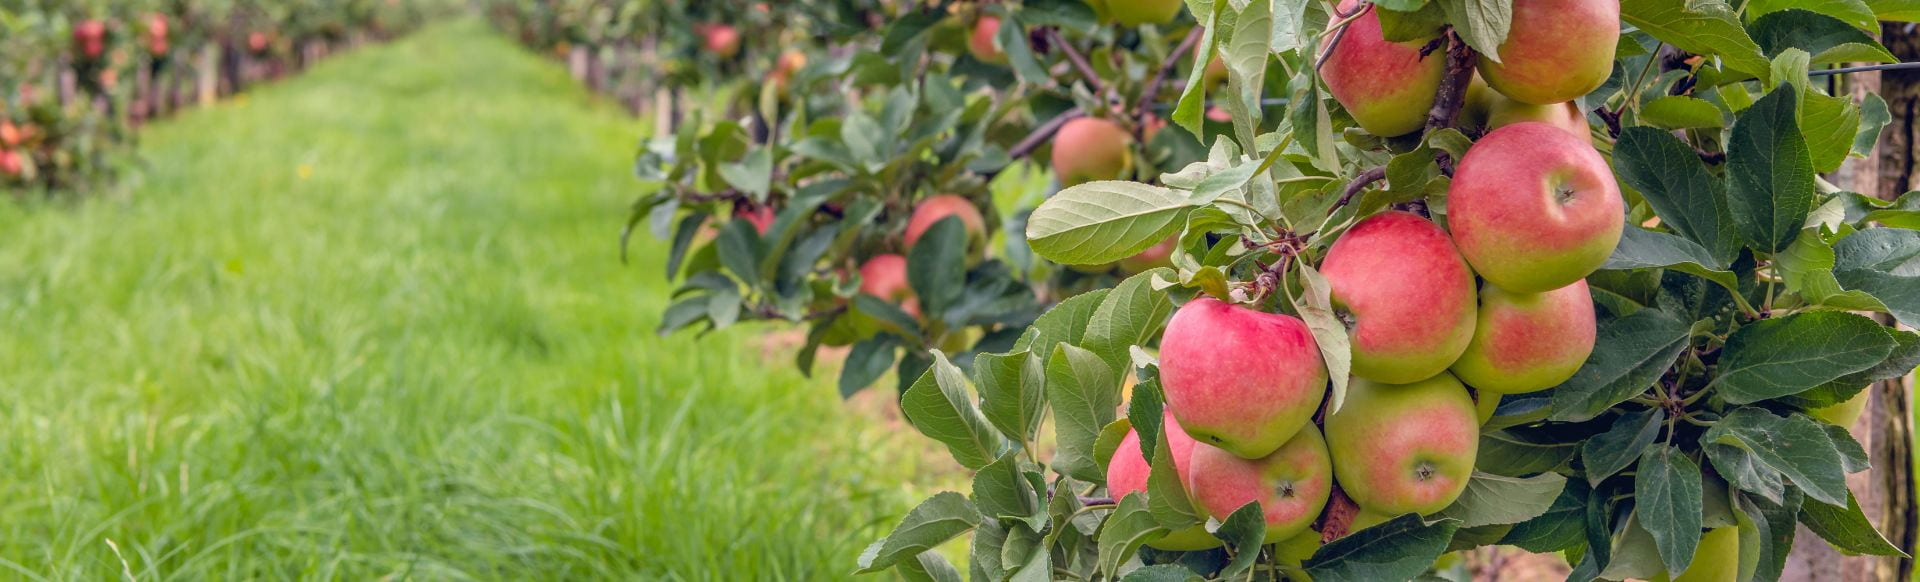 Espaliered Fruit Trees With Harvest Ripe Red Apples In A Dutch A